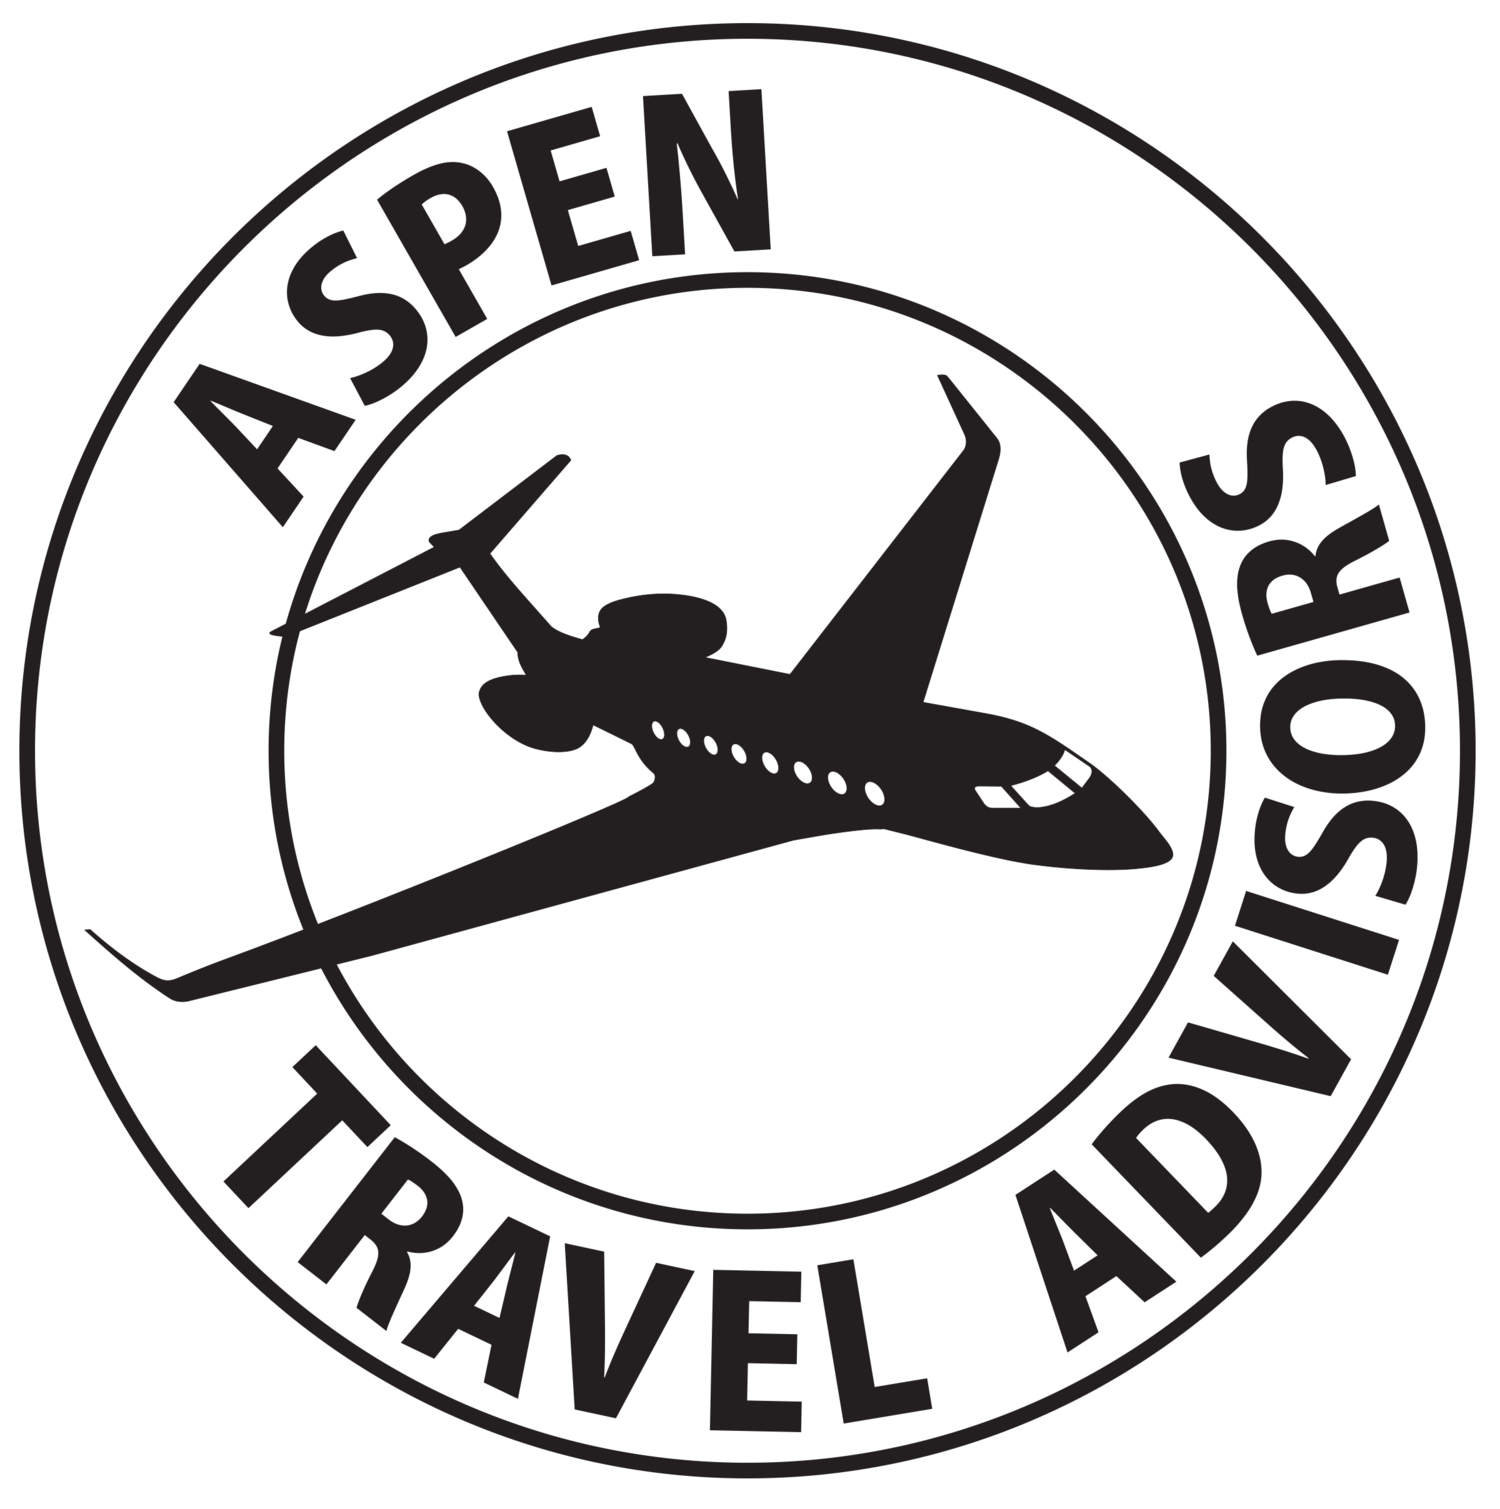 Aspen Travel Advisors